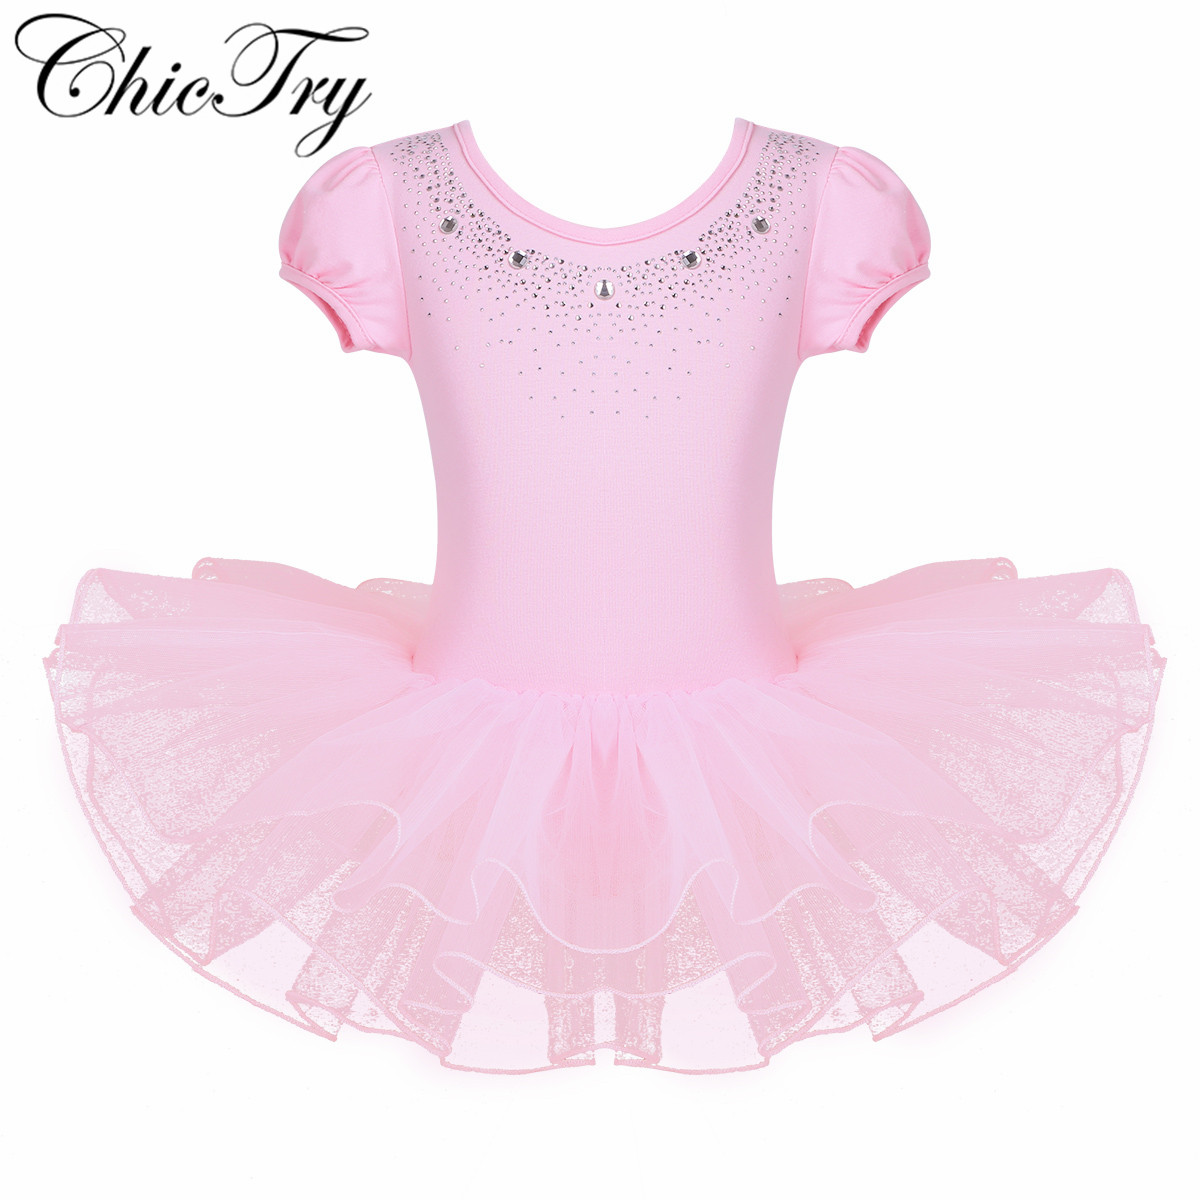 Kids Girls Mesh Short Bubble Sleeves Sparkly Rhinestones Ballet Dance Gymnastics Leotard Tulle Tutu Dress for Stage Performance